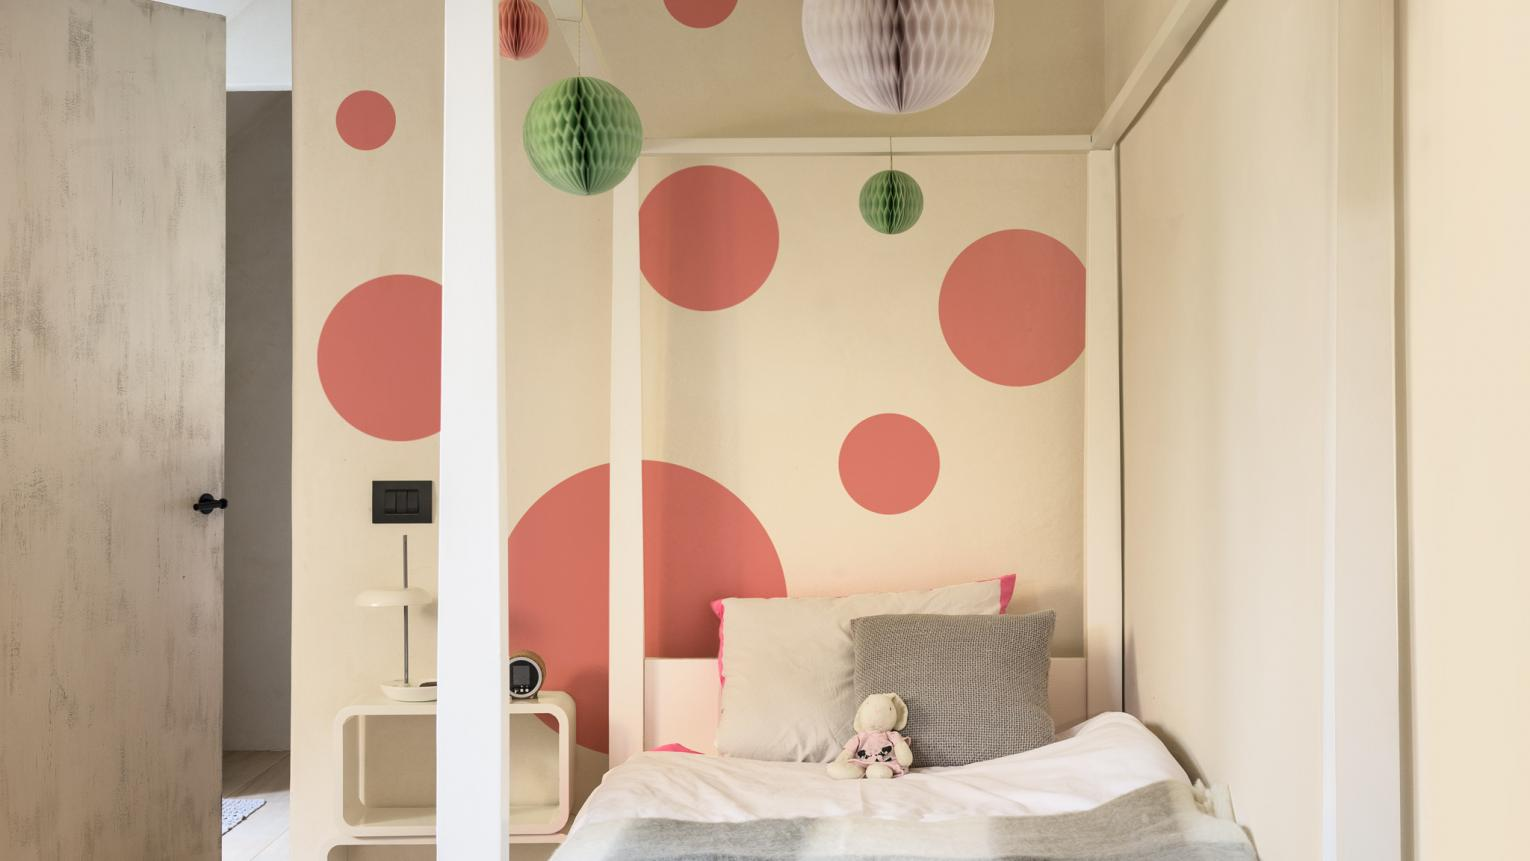 Use circles to create different sized dots in your child's bedroom